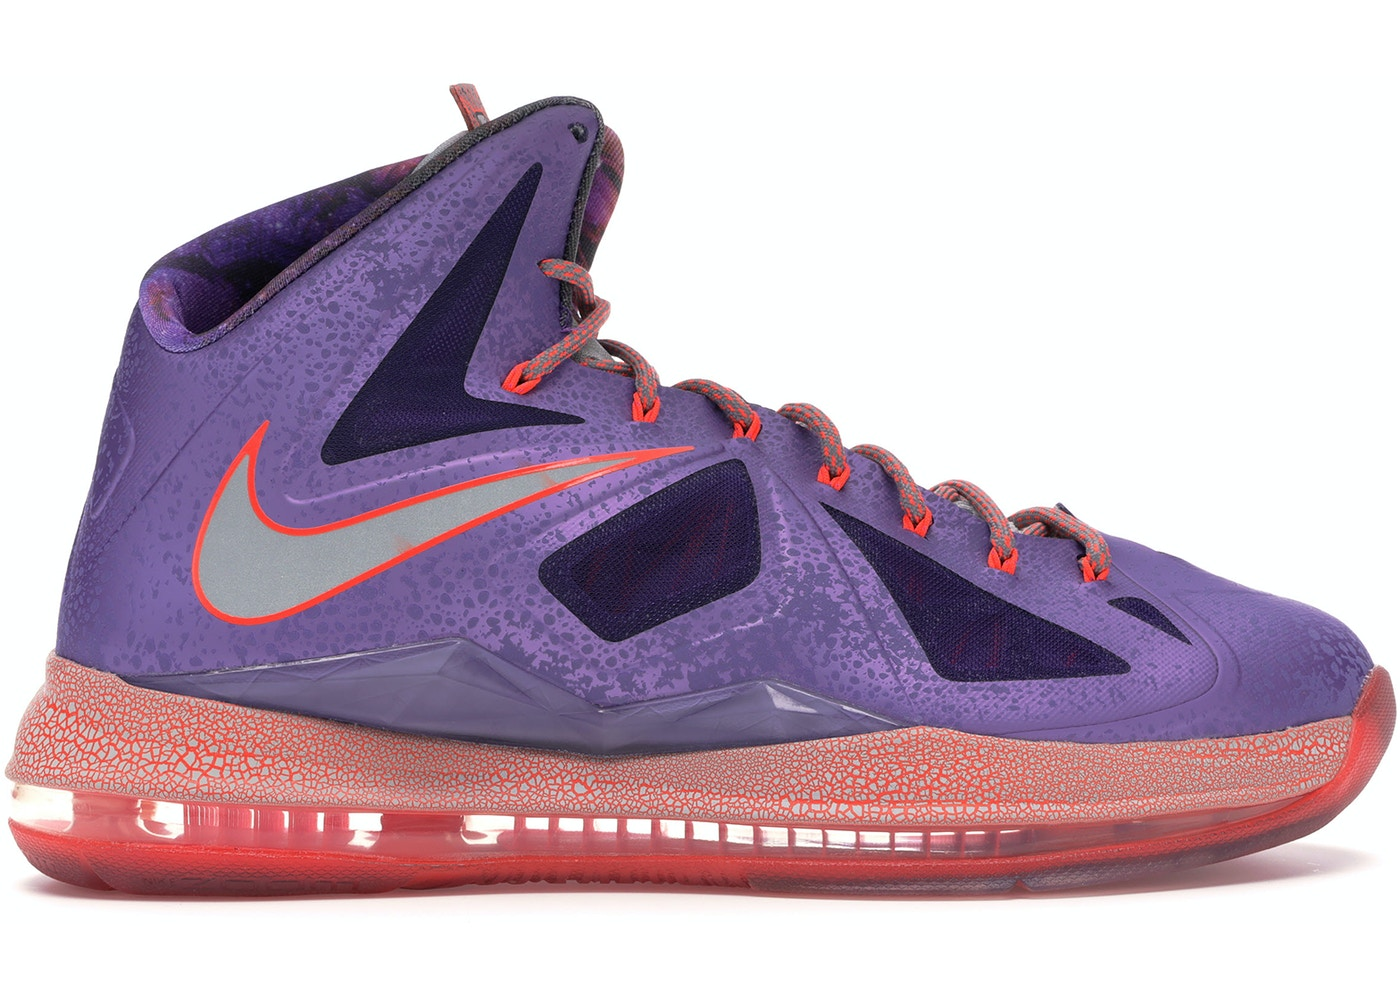 newest 9c846 66131 LeBron X All-Star Area 72 - 583108-500